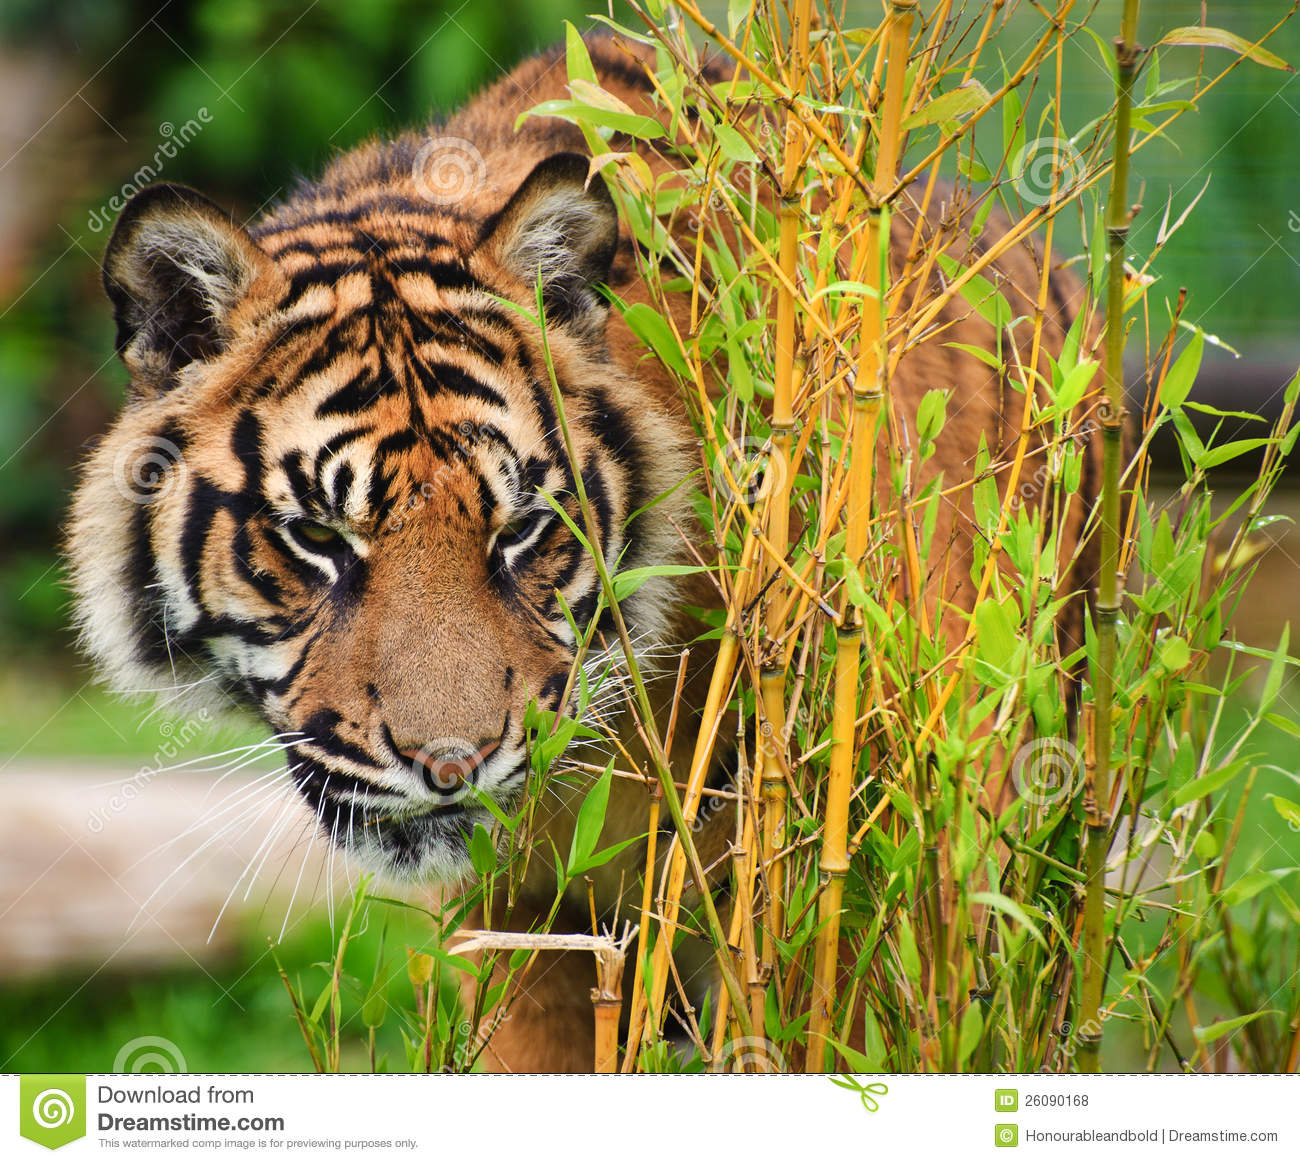 sumatran tiger map with Royalty Free Stock Photos Sumatran Tiger Panthera Tigris Sumatrae Image26090168 on 9148465357 likewise 5936486606 as well Diffusione E Habitat additionally 4220407336 together with 11.